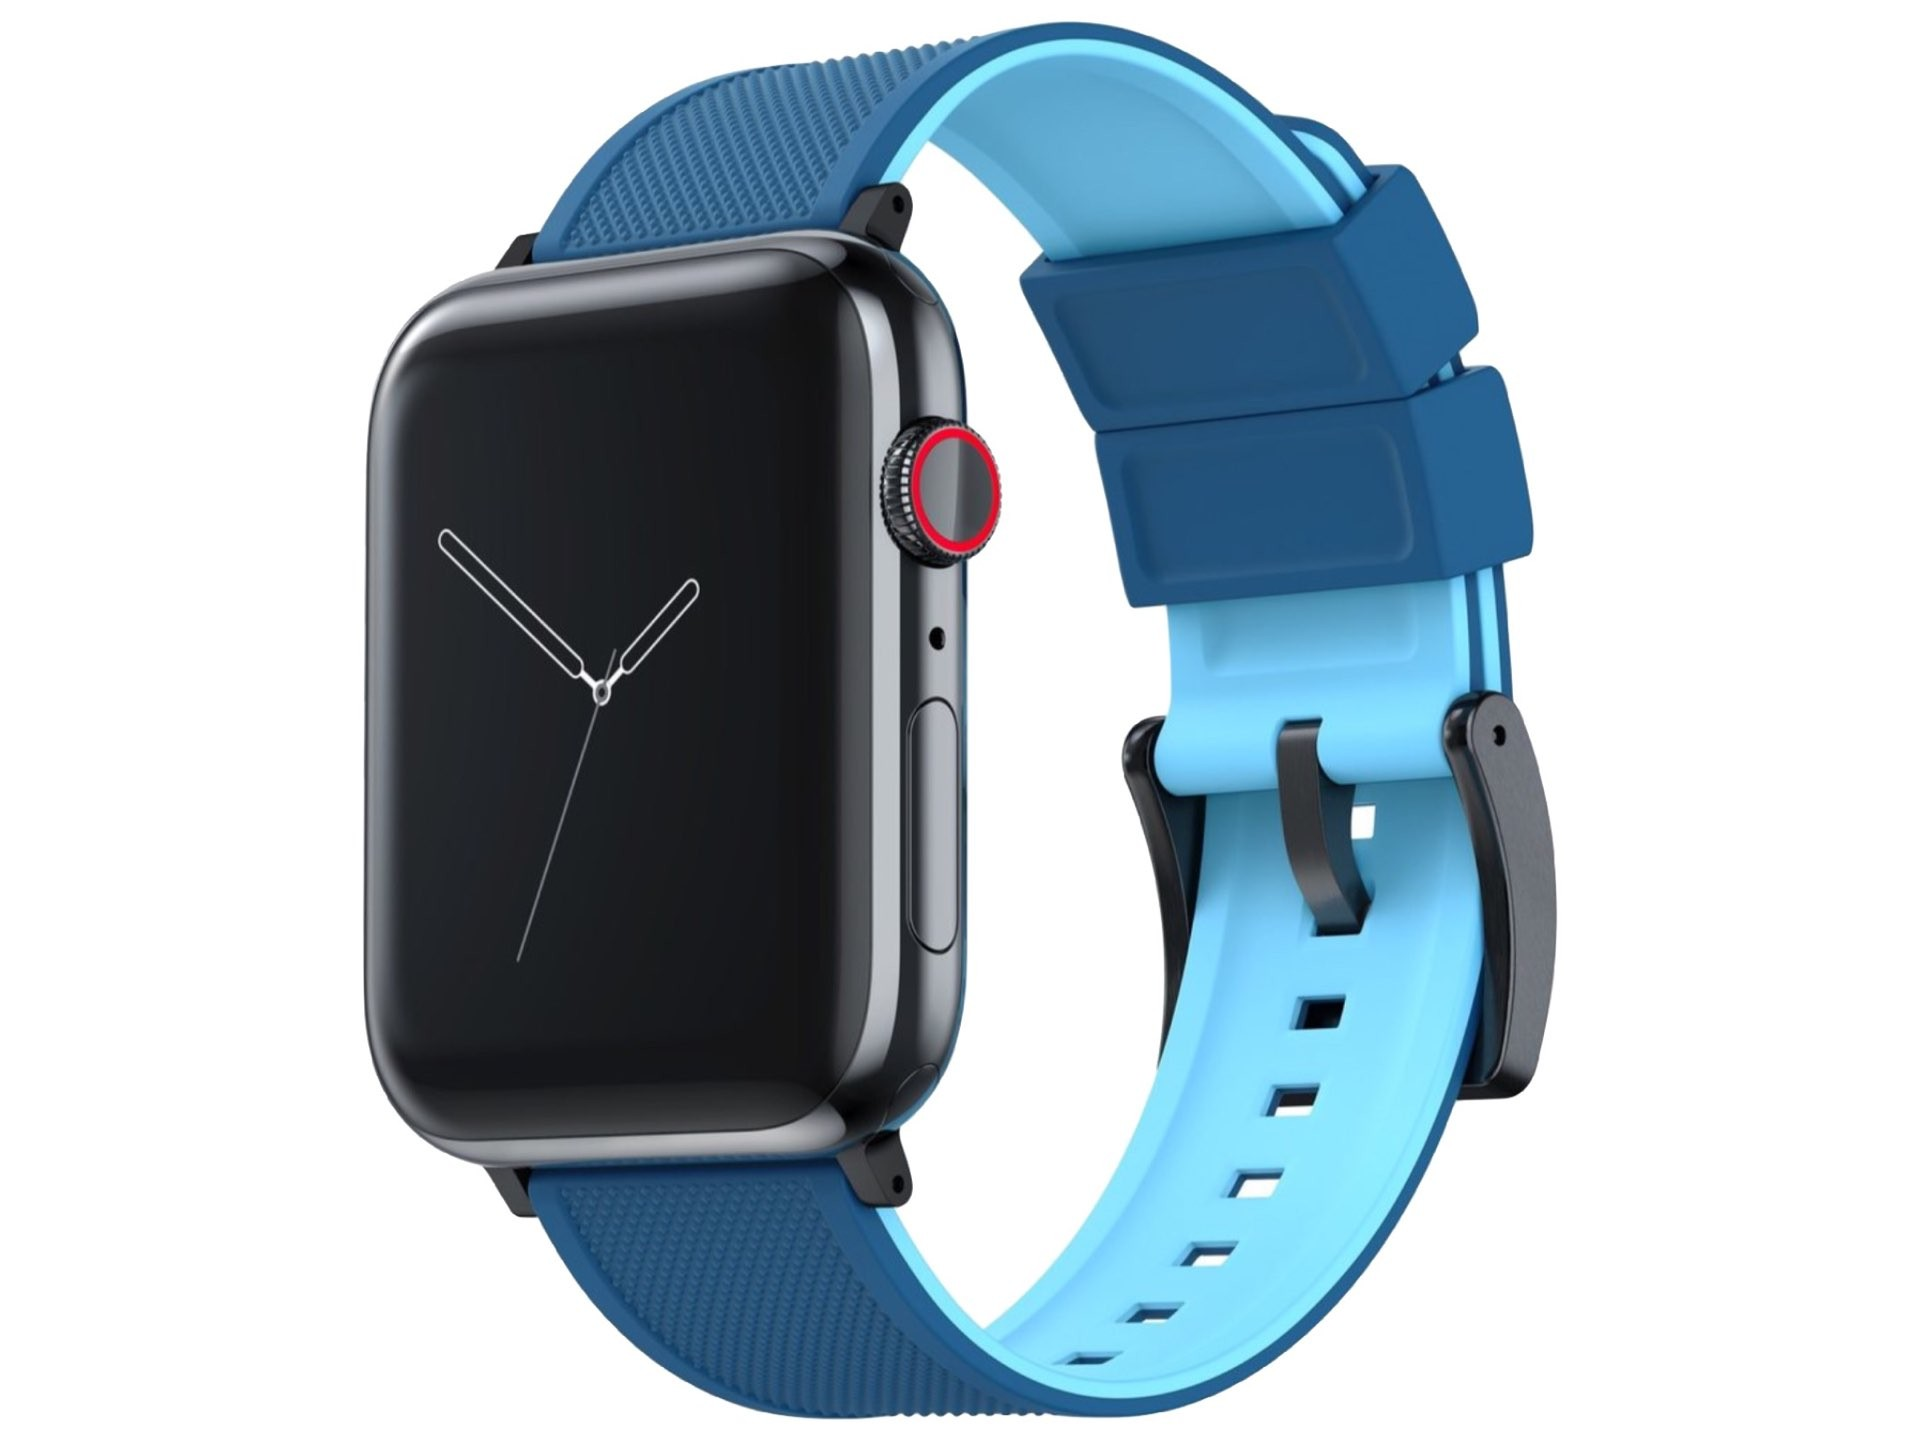 barton-watch-bands-elite-silicone-strap-for-apple-watch-flatwater-blue-black-pvd-hardware